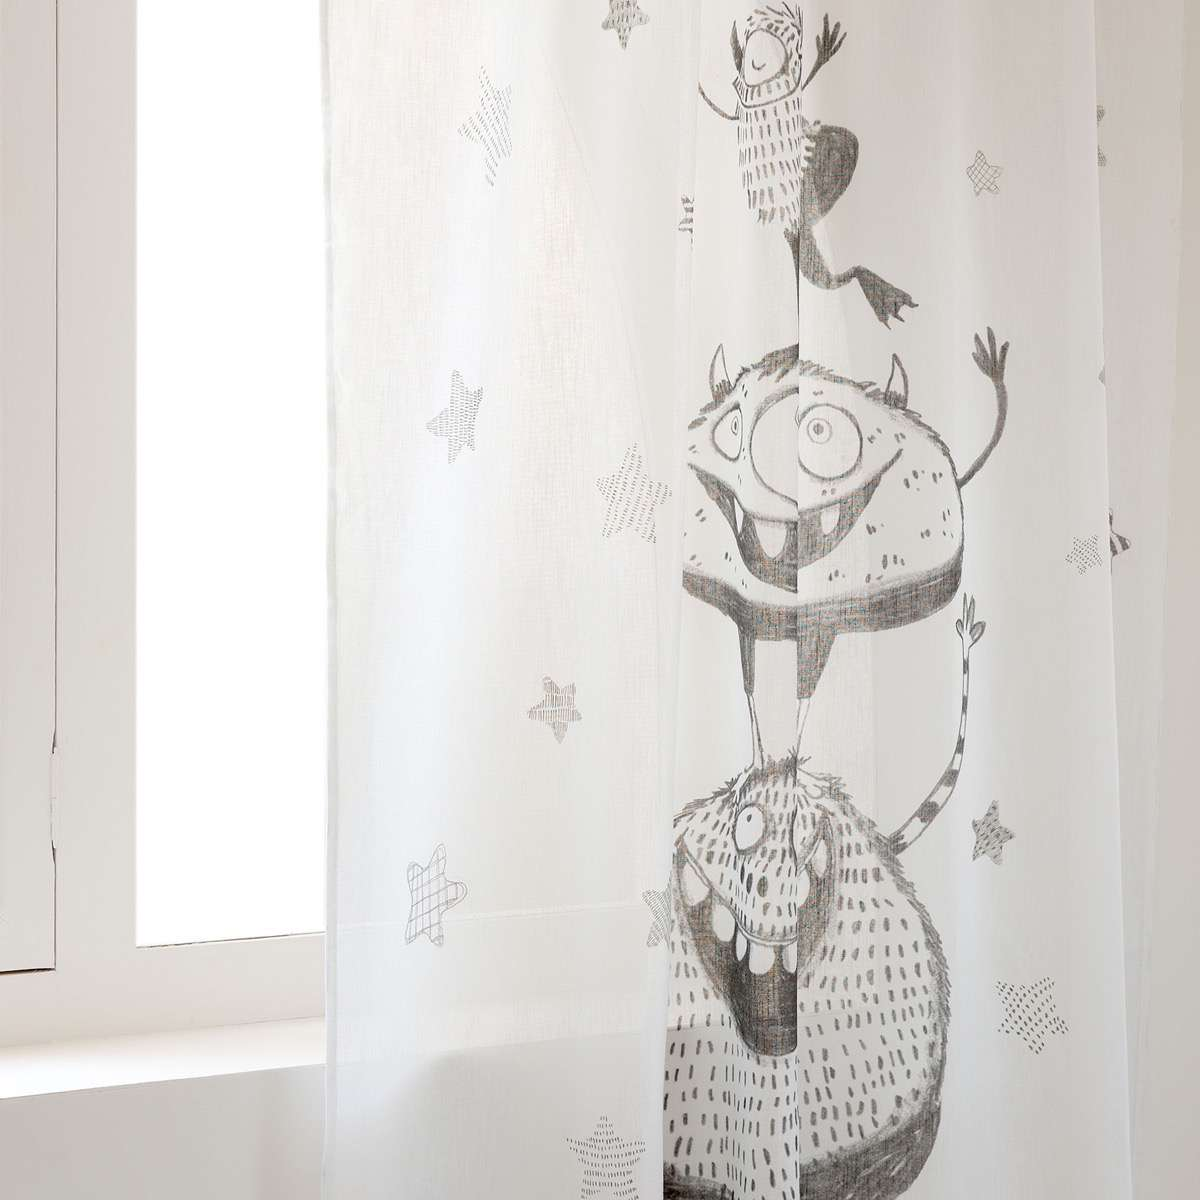 As son las novedades de zara home kids este verano for Cortinas bebe zara home